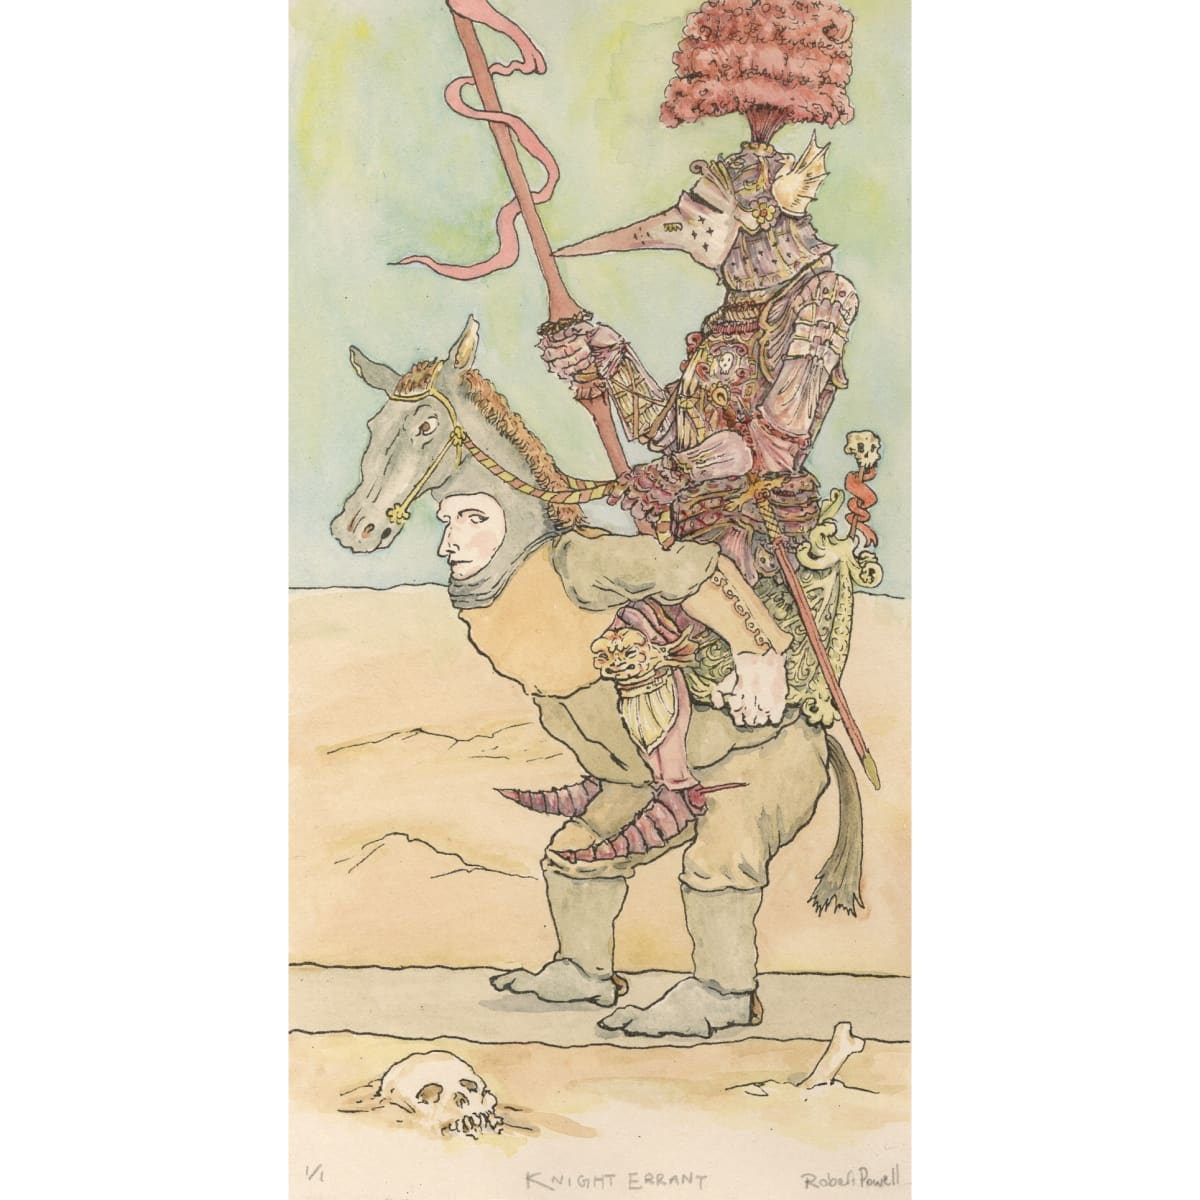 Knight Errant 2018; signed, numbered and titled; edition of one lithograph and watercolour | 25 x 15 cm